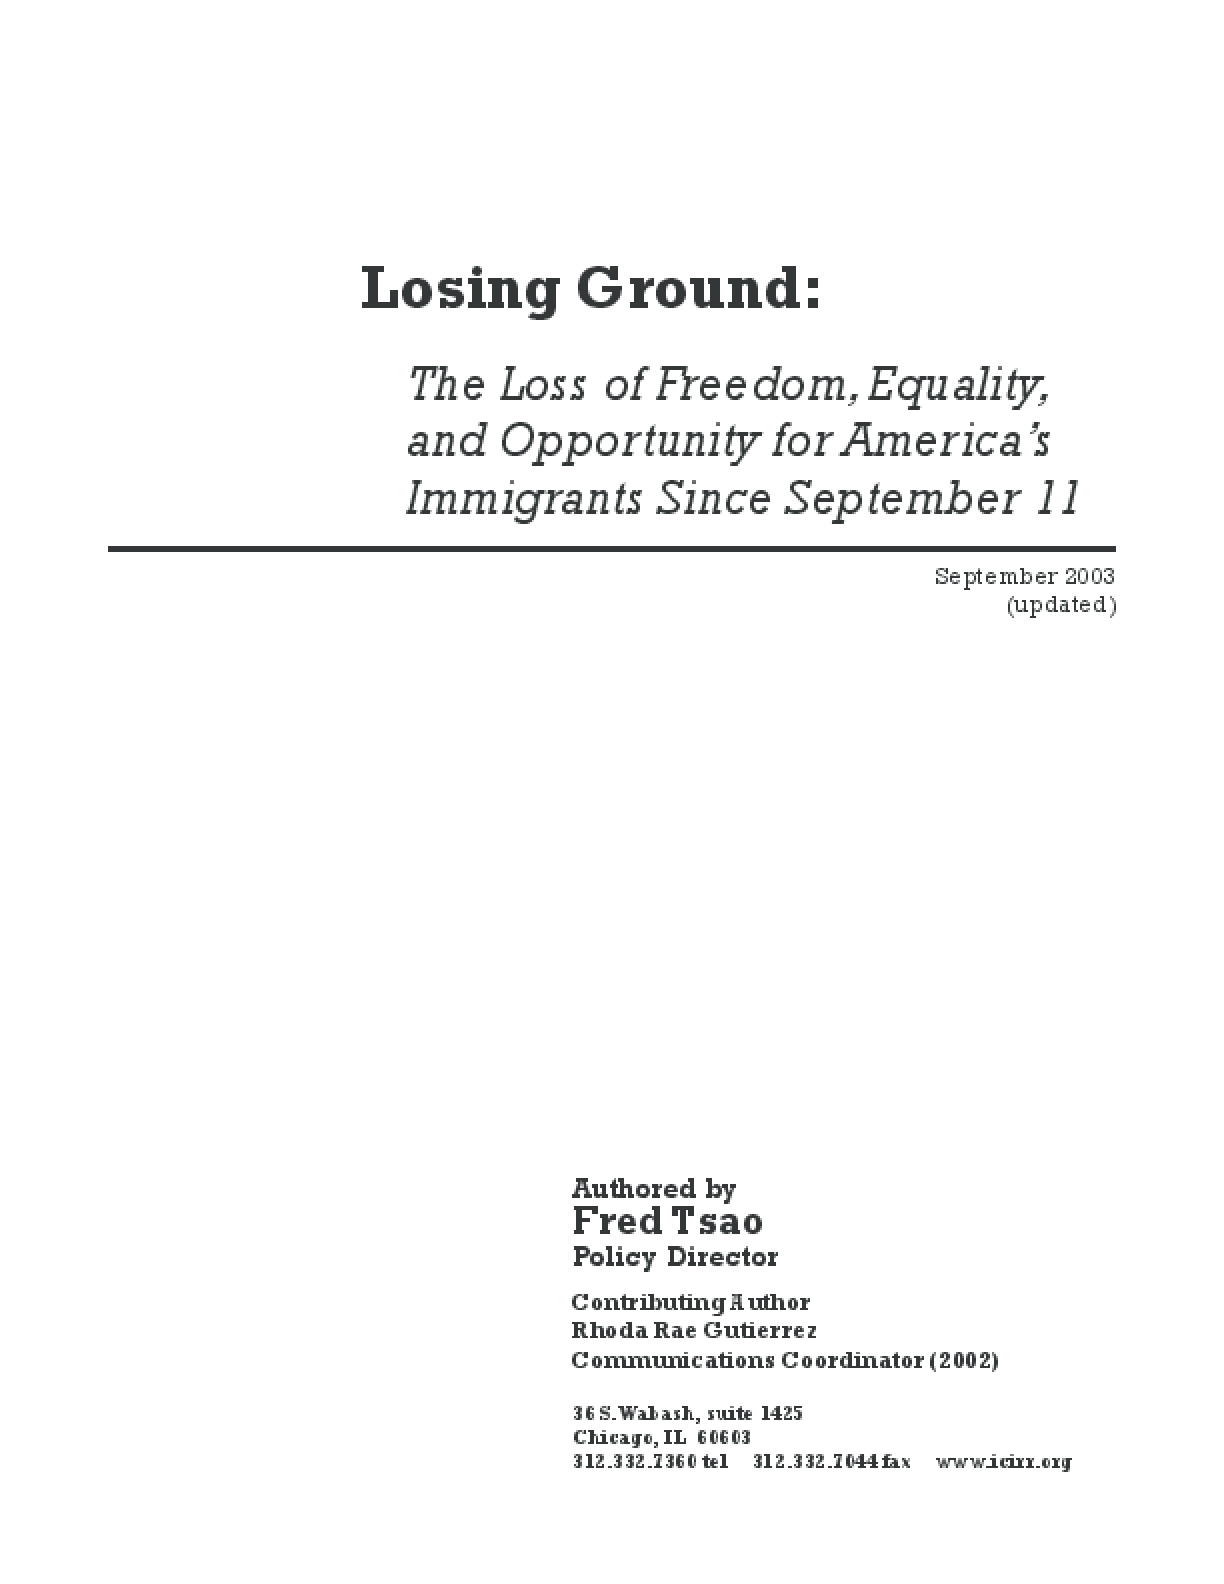 Losing Ground: The Loss of Freedom, Equality, and Opportunity for America's Immigrants Since the September 11 Attacks